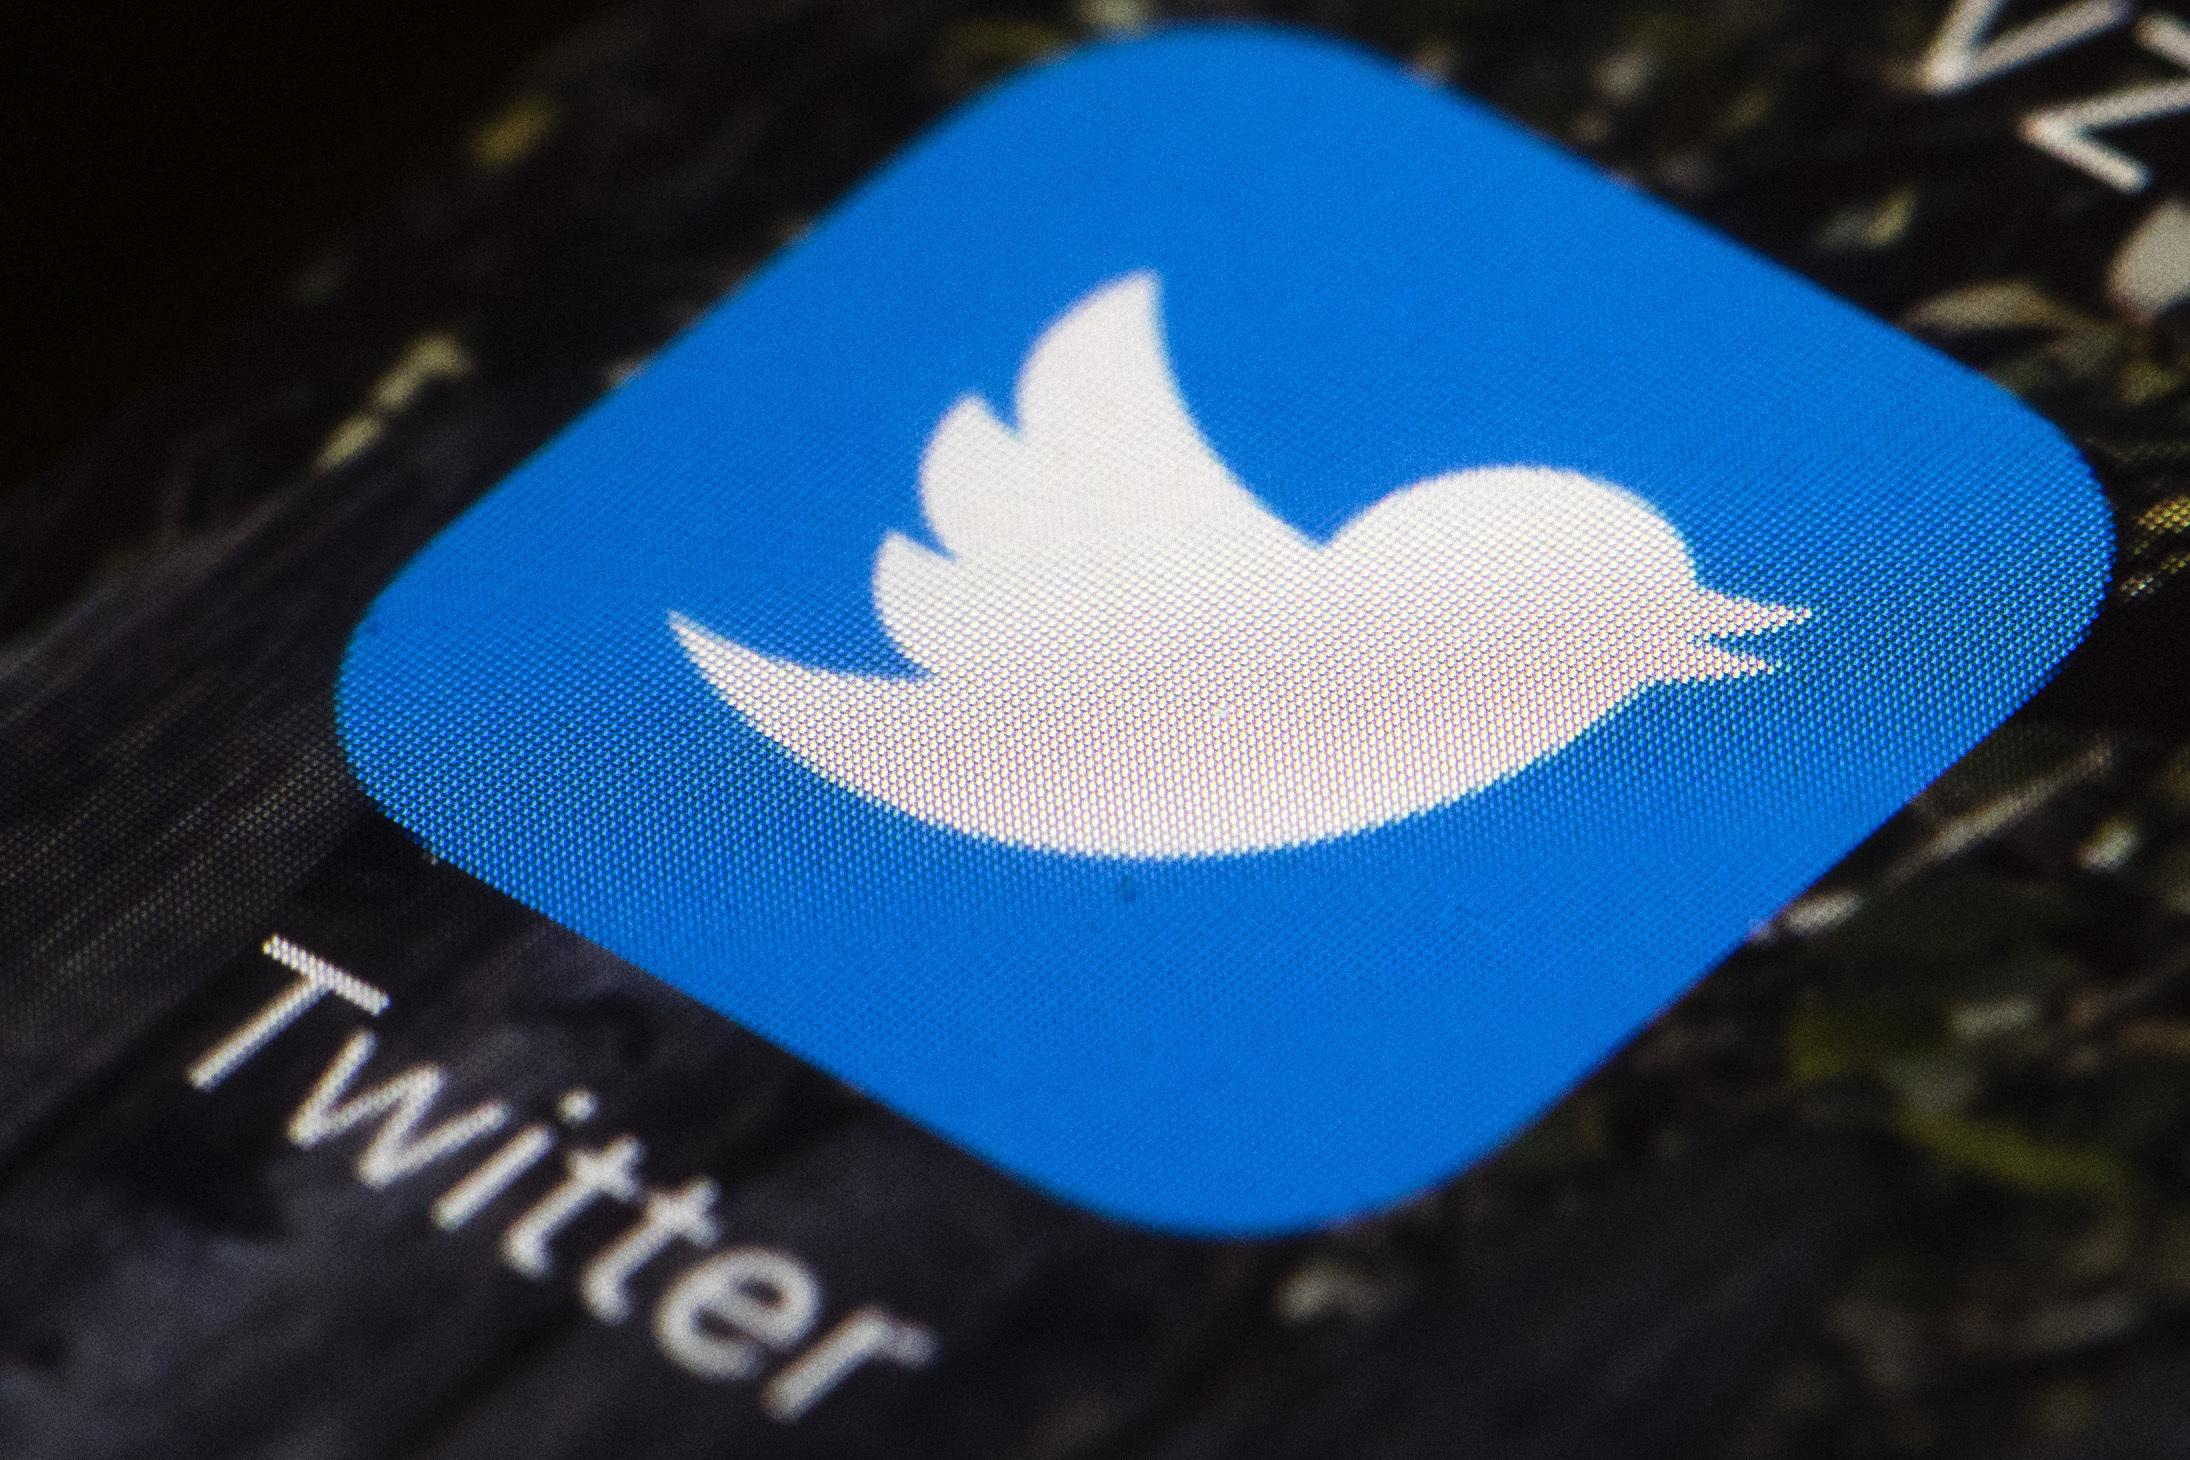 Conservative coalition takes on Twitter and Facebook over hate speech